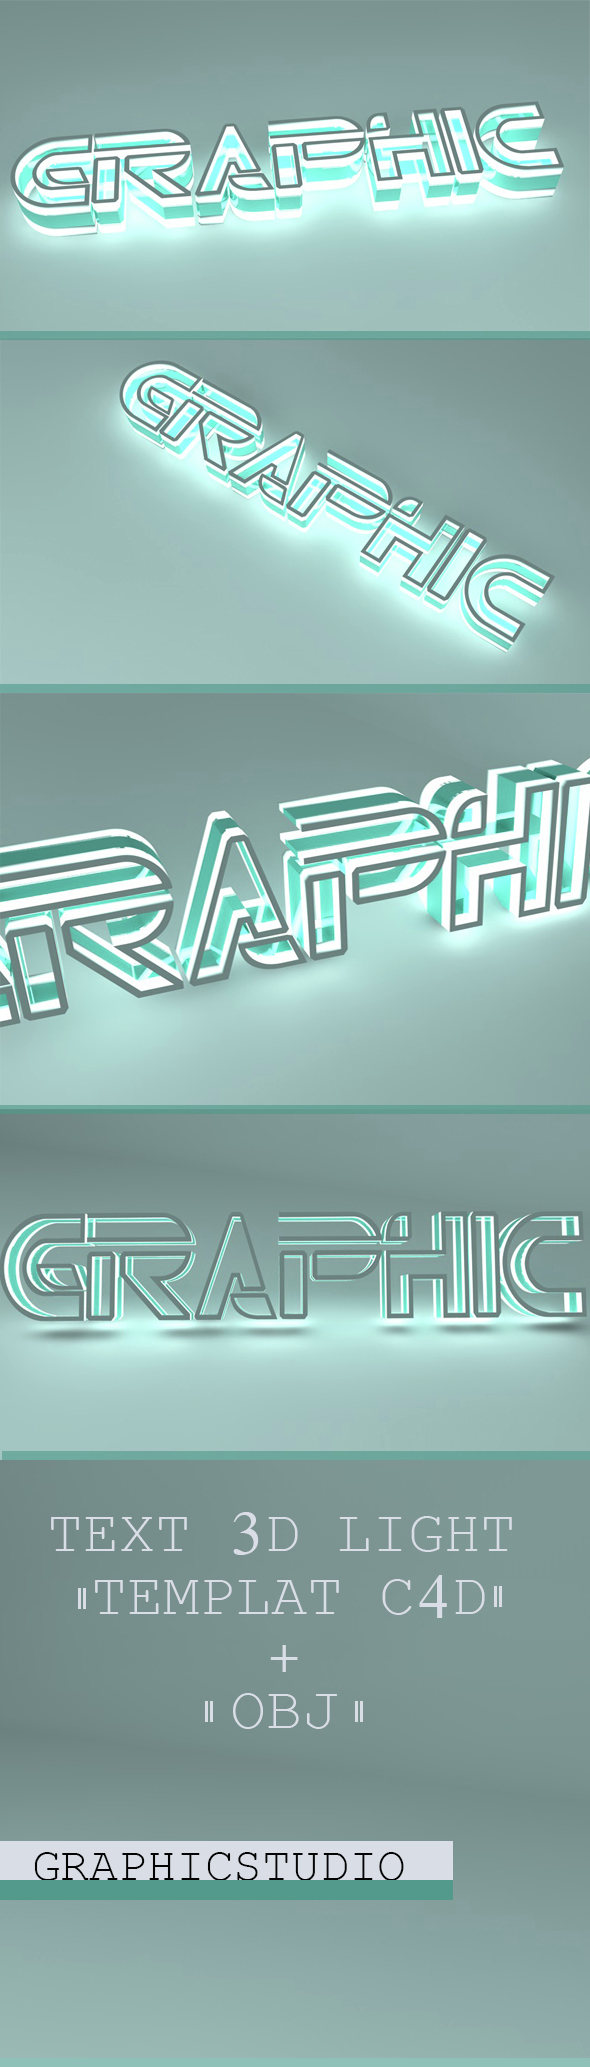 Text 3d Light - 3DOcean Item for Sale